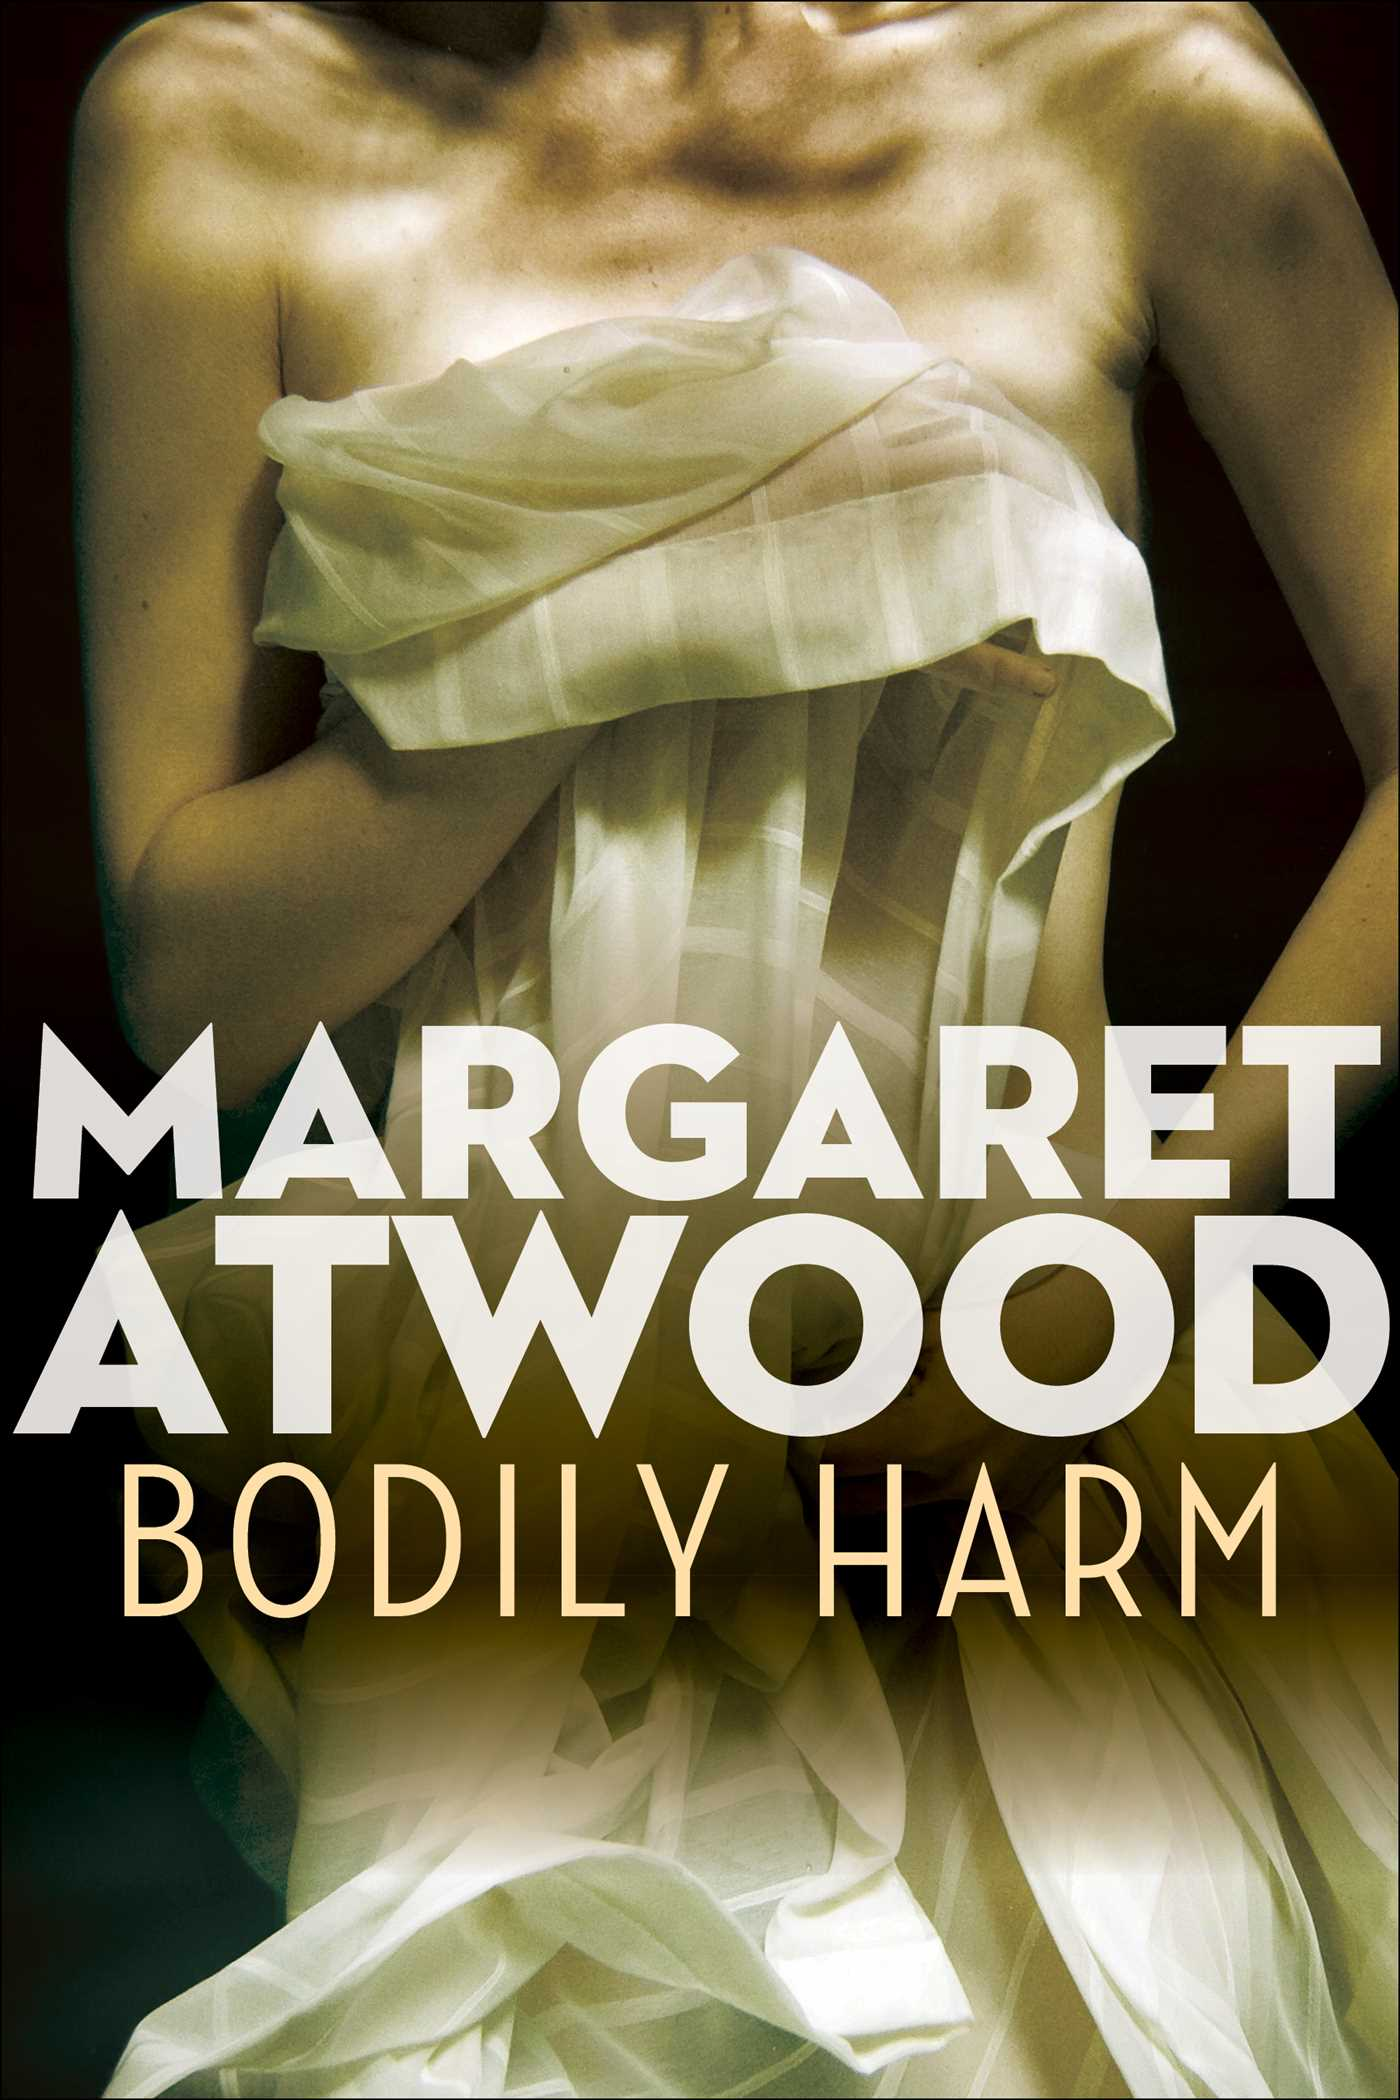 bodily harm margaret atwood essays Letters & essays poetry art & photography bodily harm margaret atwood margaret atwood bodily harm raymond federman.